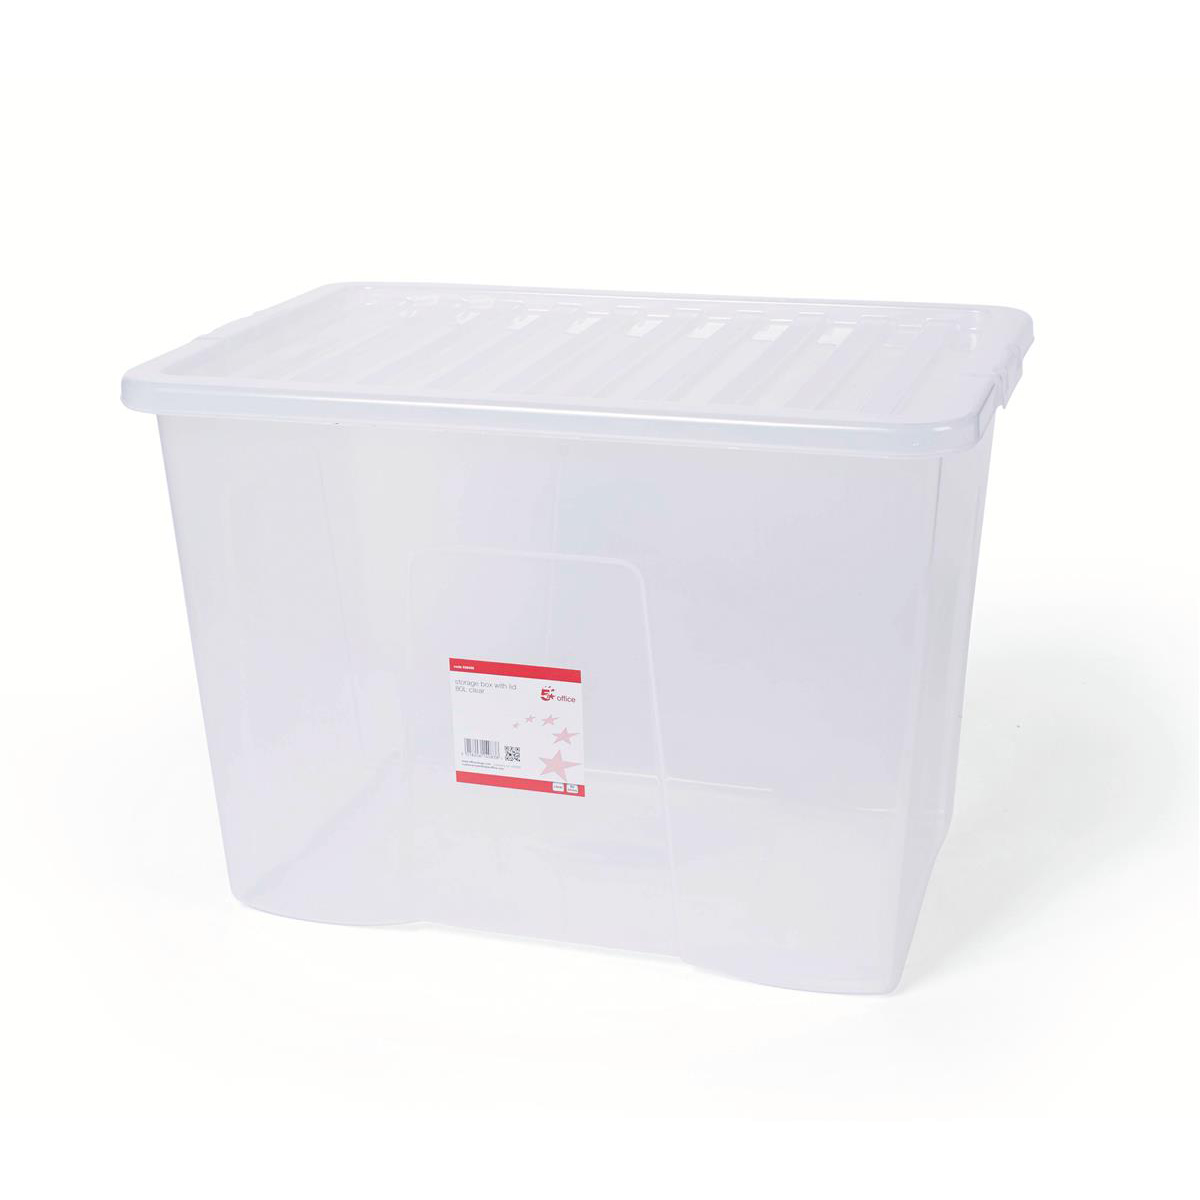 Storage Boxes 5 Star Office Storage Box Plastic with Lid Stackable 80 Litre Clear